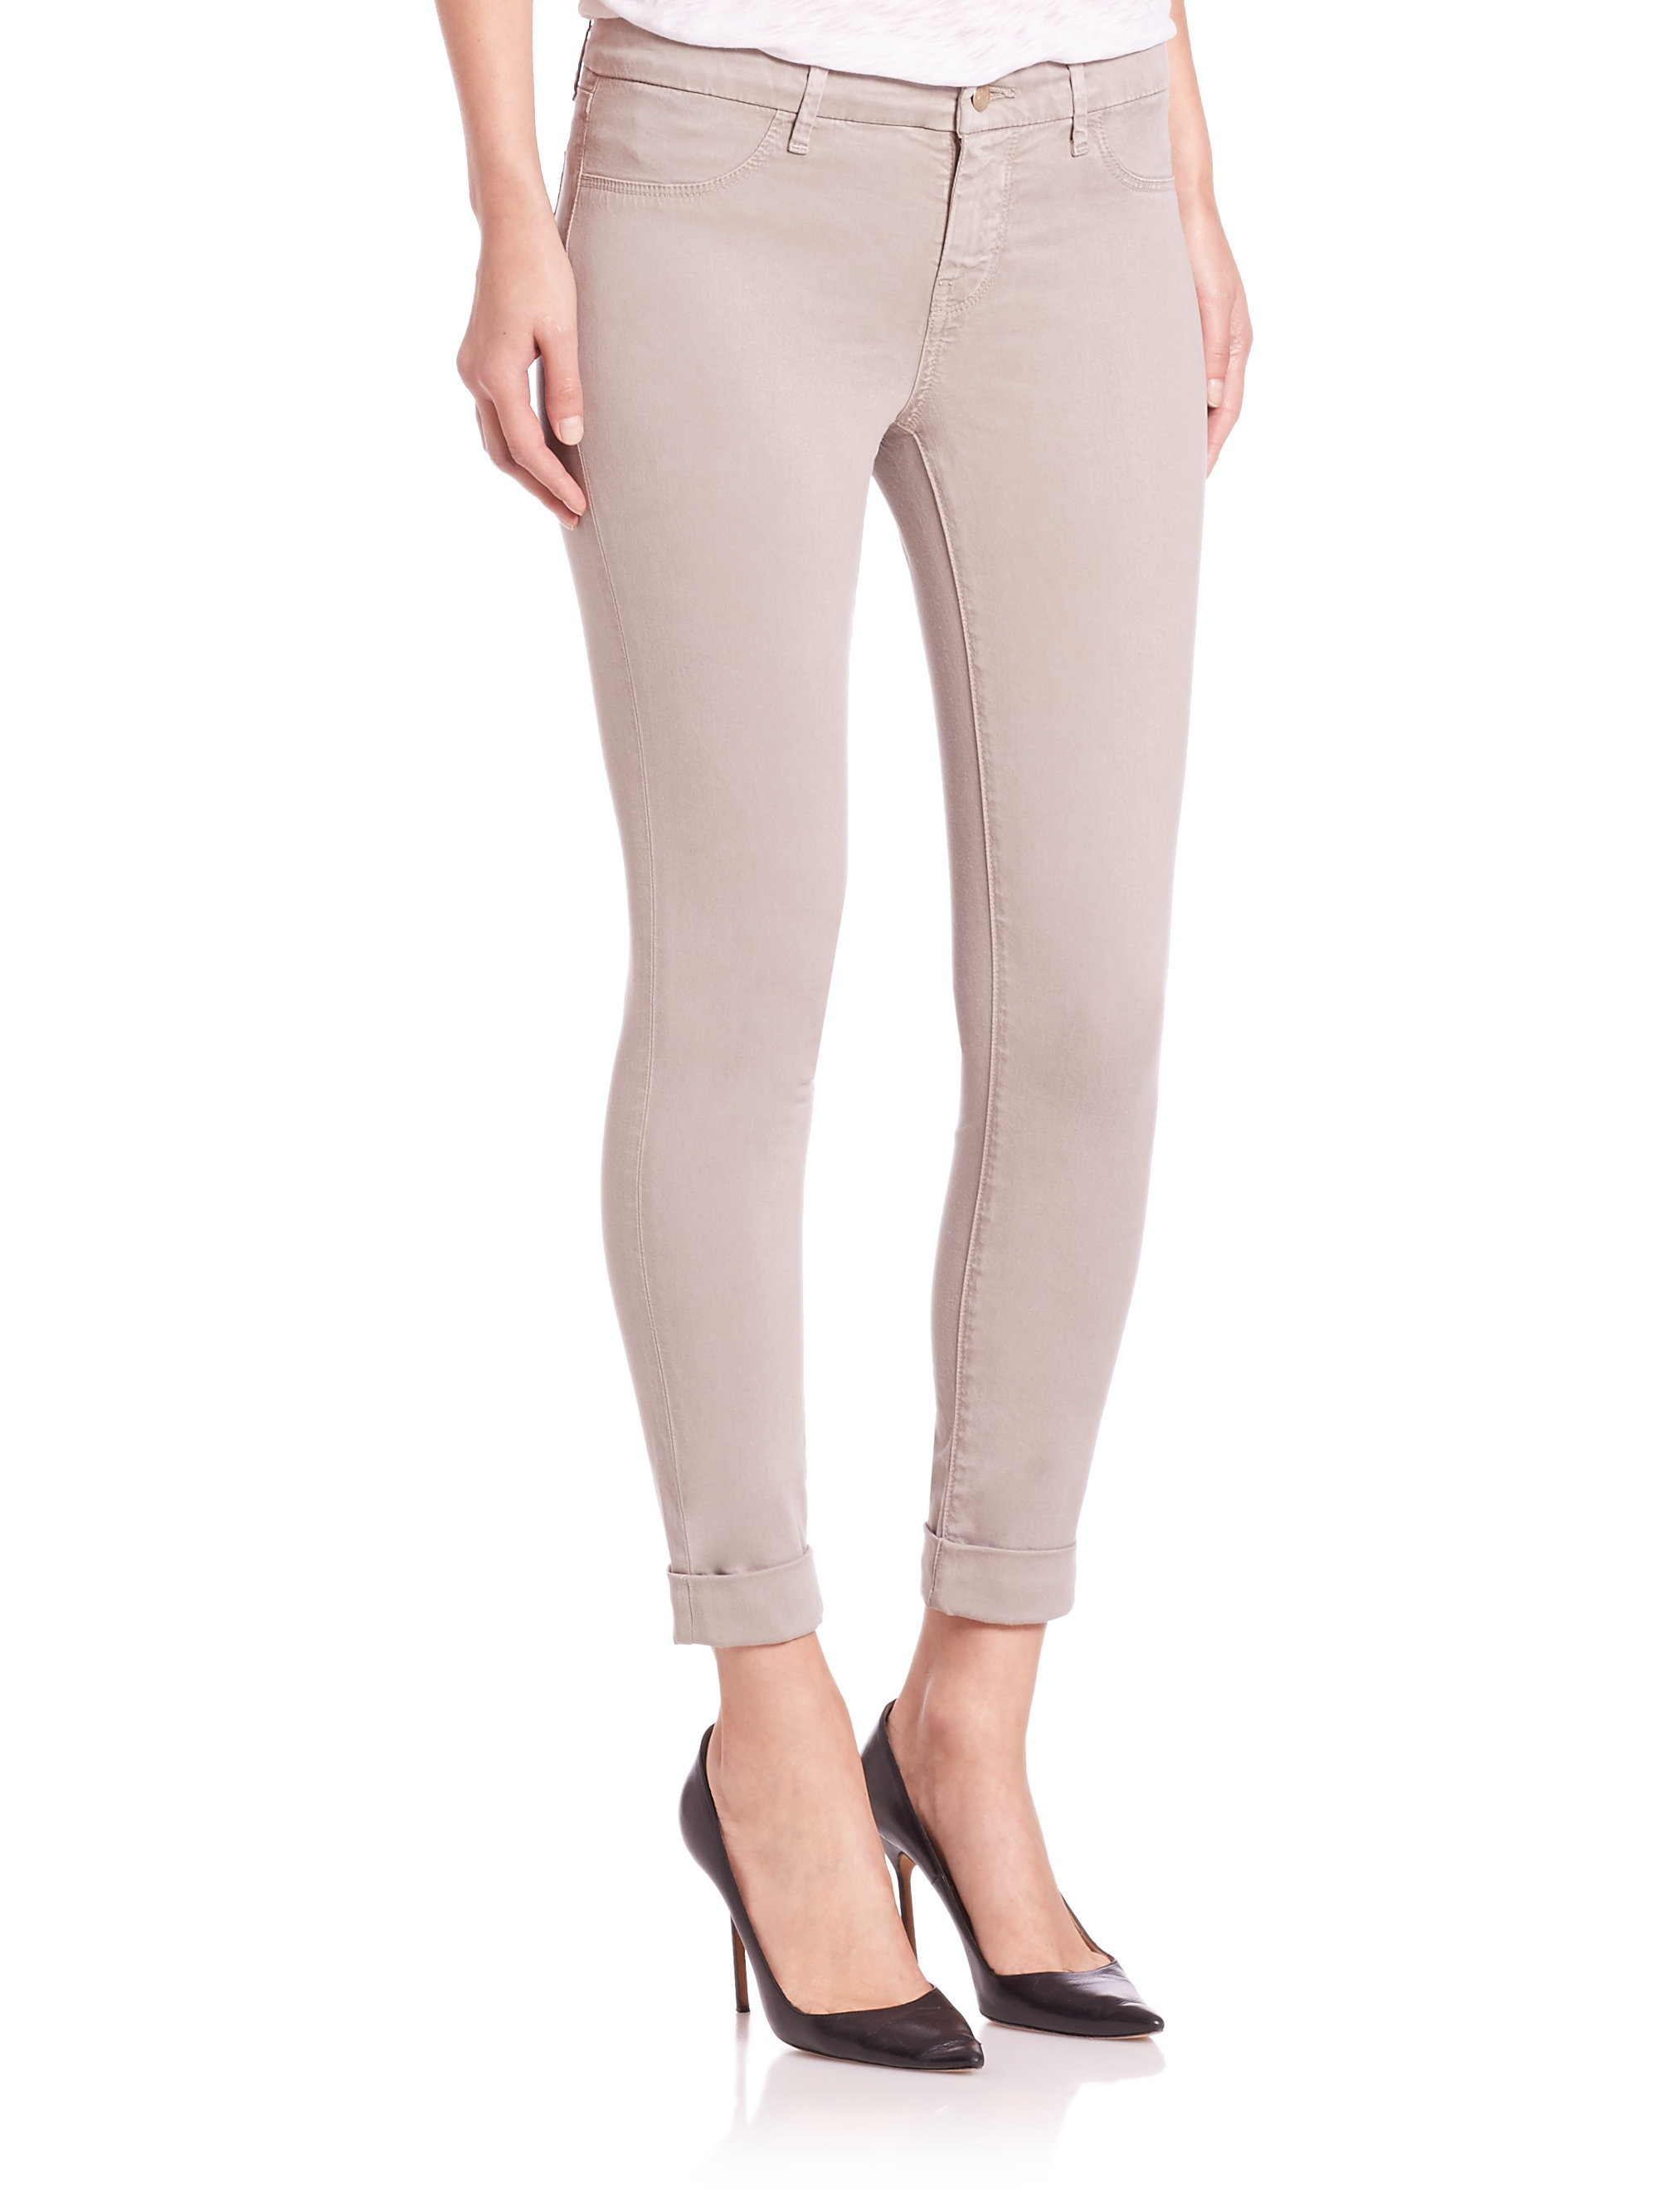 J Brand Anja mid rise trousers Cheap New Arrival 9XtImv